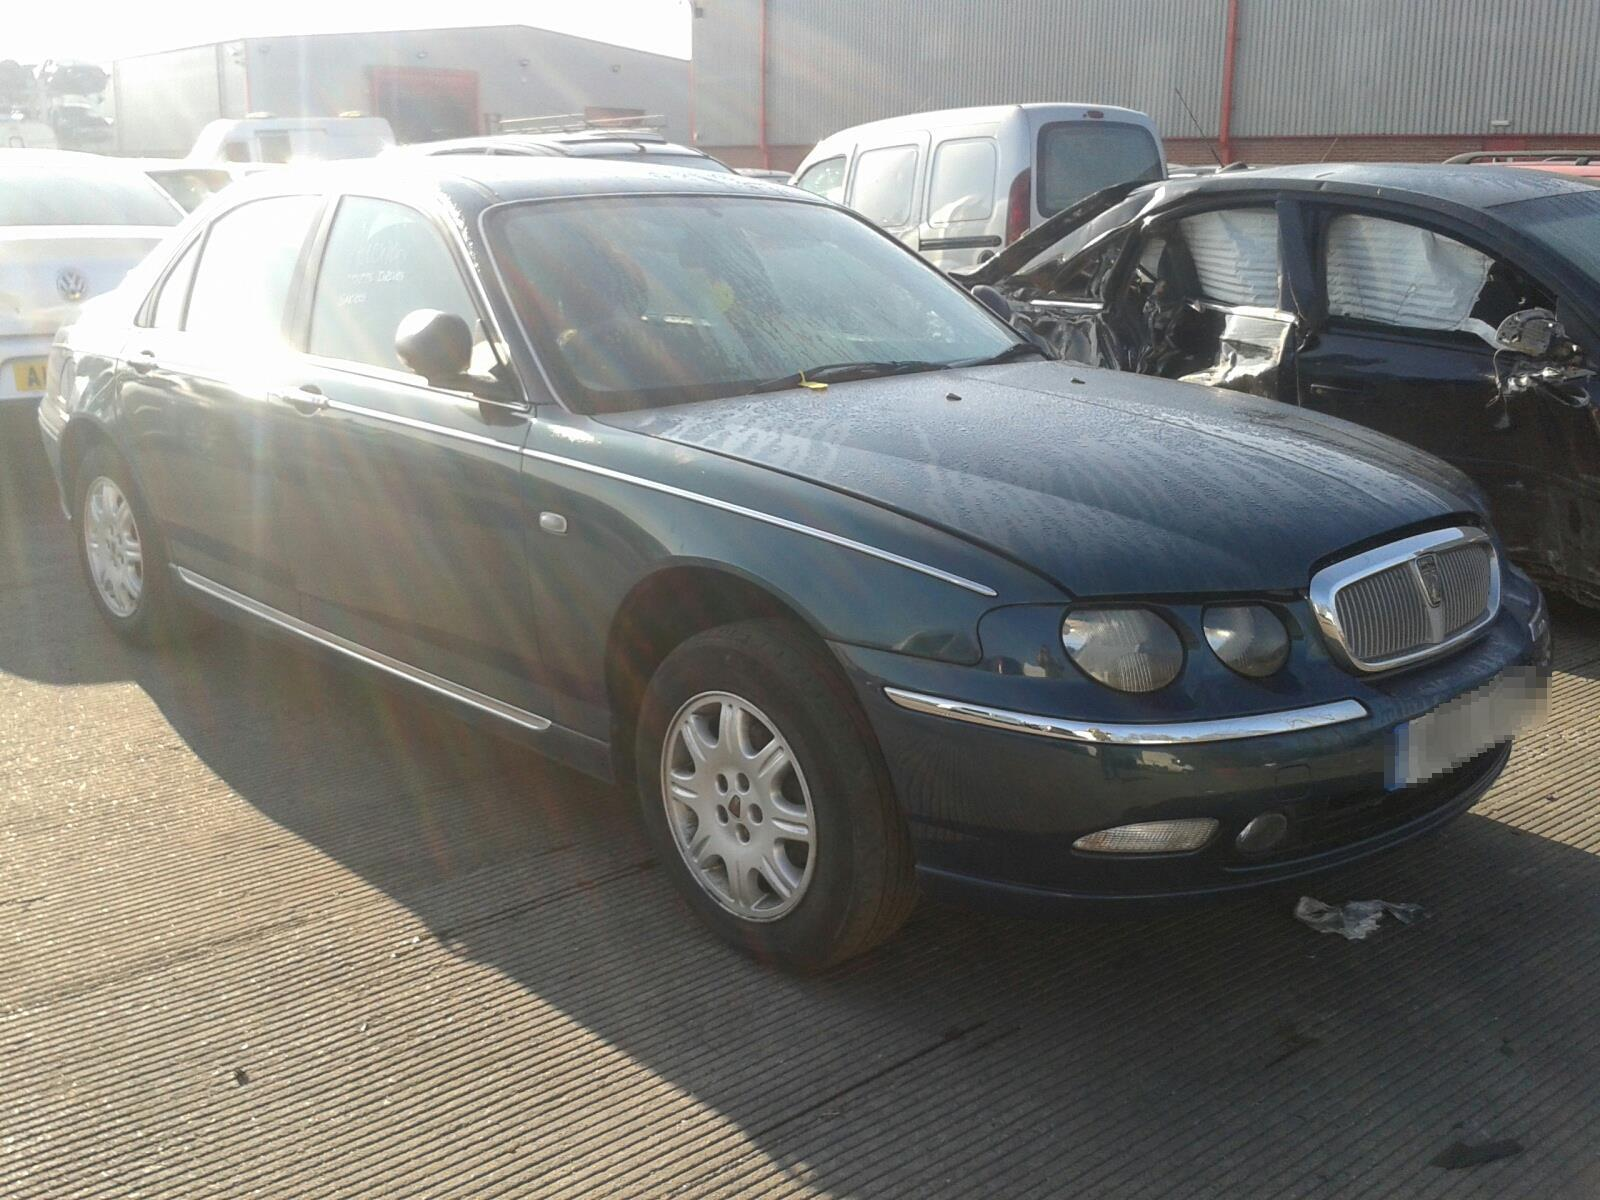 2004 rover 75 1999 to 2004 4 door saloon petrol manual breaking rh motorhog co uk Rover 75 Coupe Rover 75 Spares